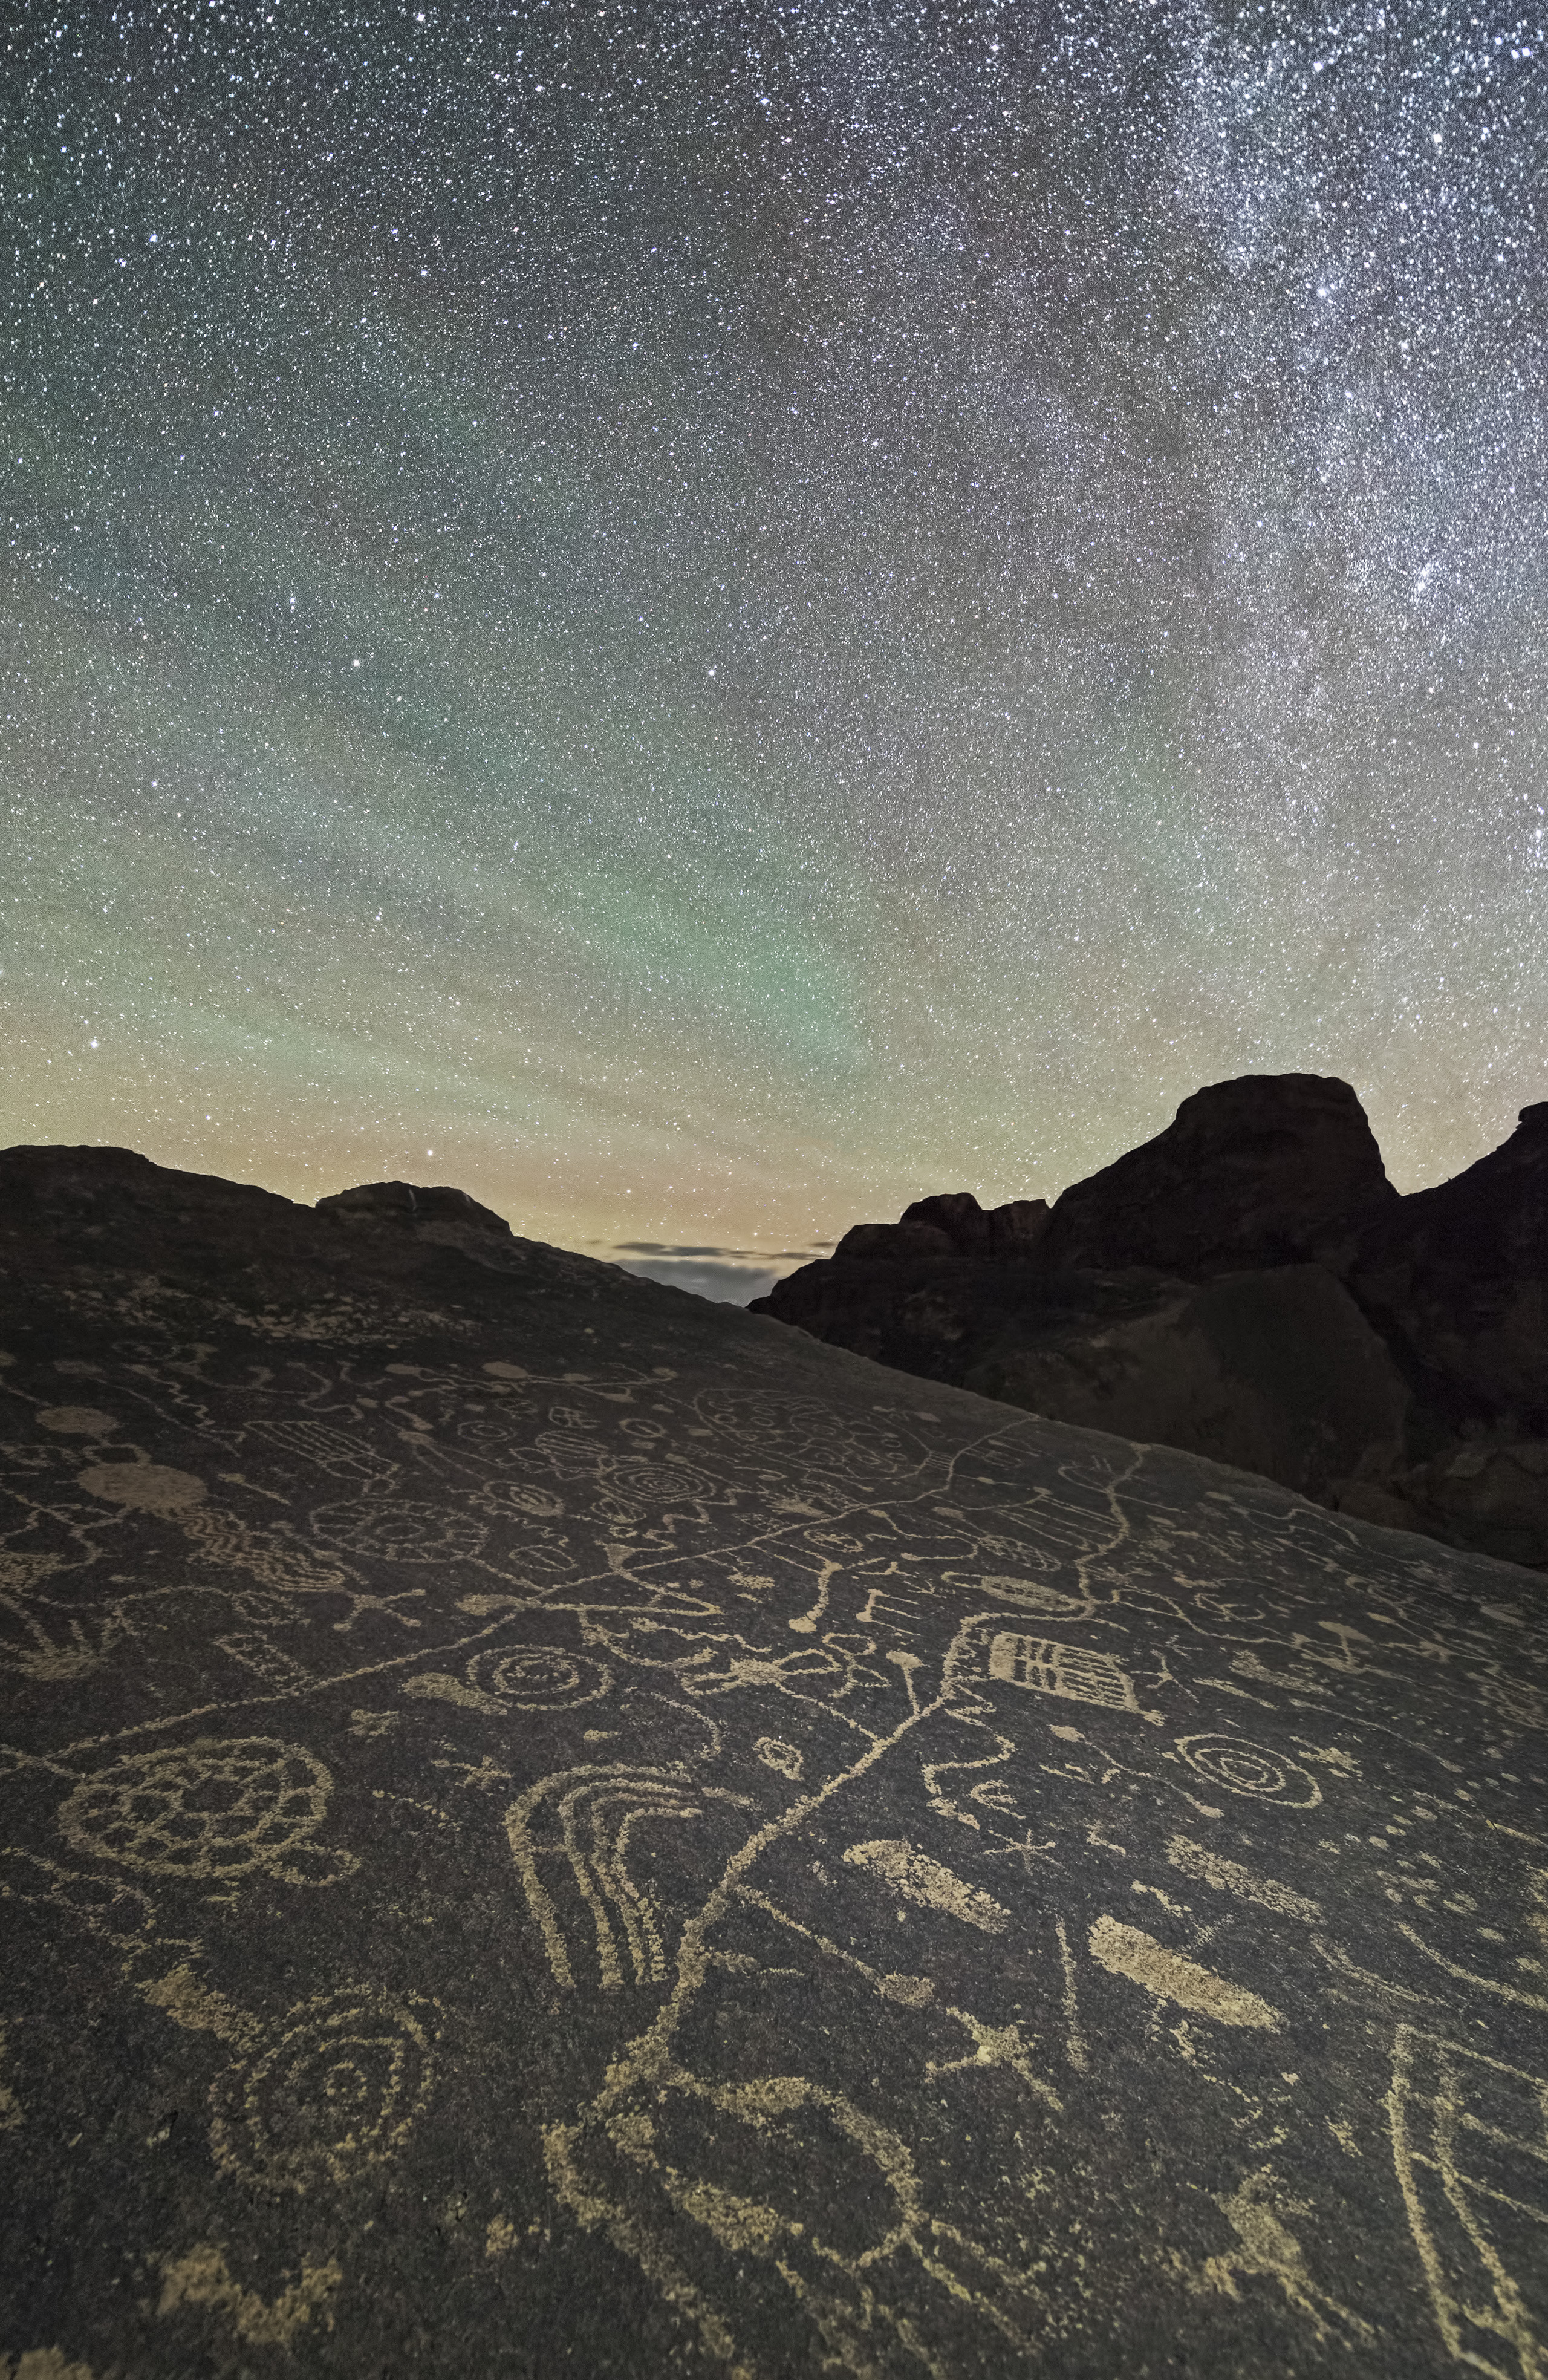 Ancient petroglyphs are lit up by the glittering stars of the night sky in the Eastern Sierras in Calif.